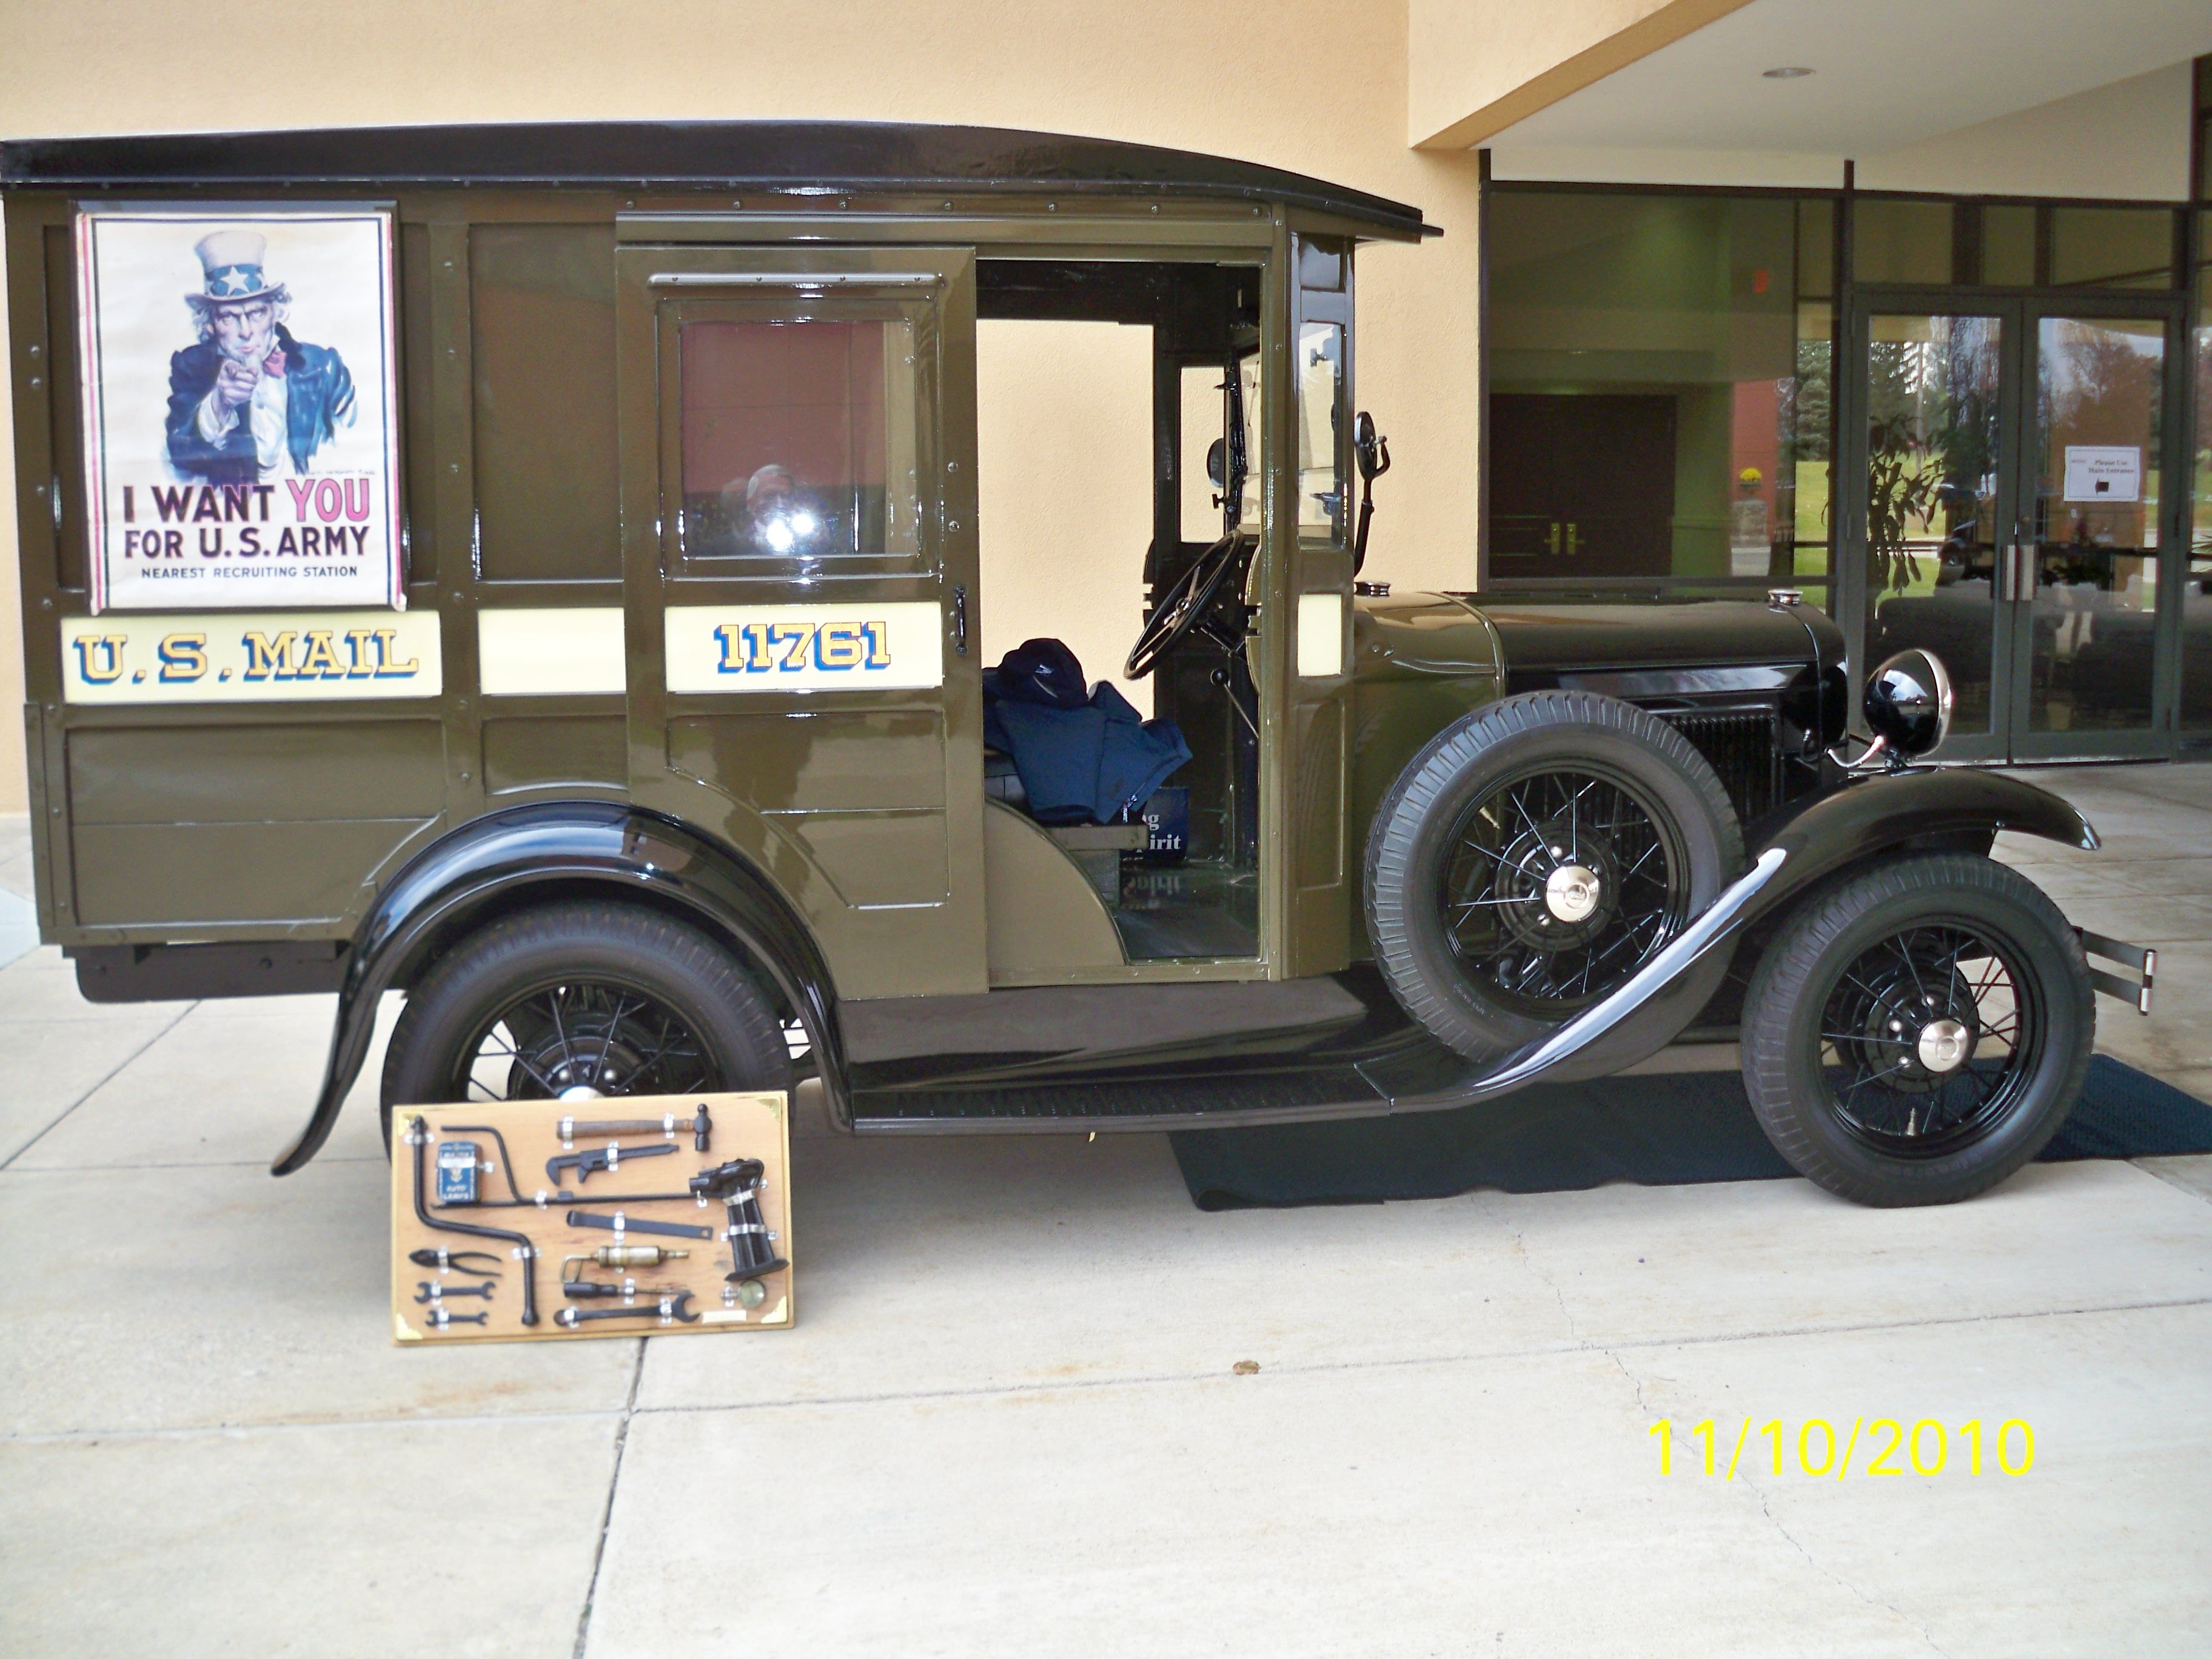 Old postal delivery vehicle a u t o s pinterest for Oficina postal mas cercana